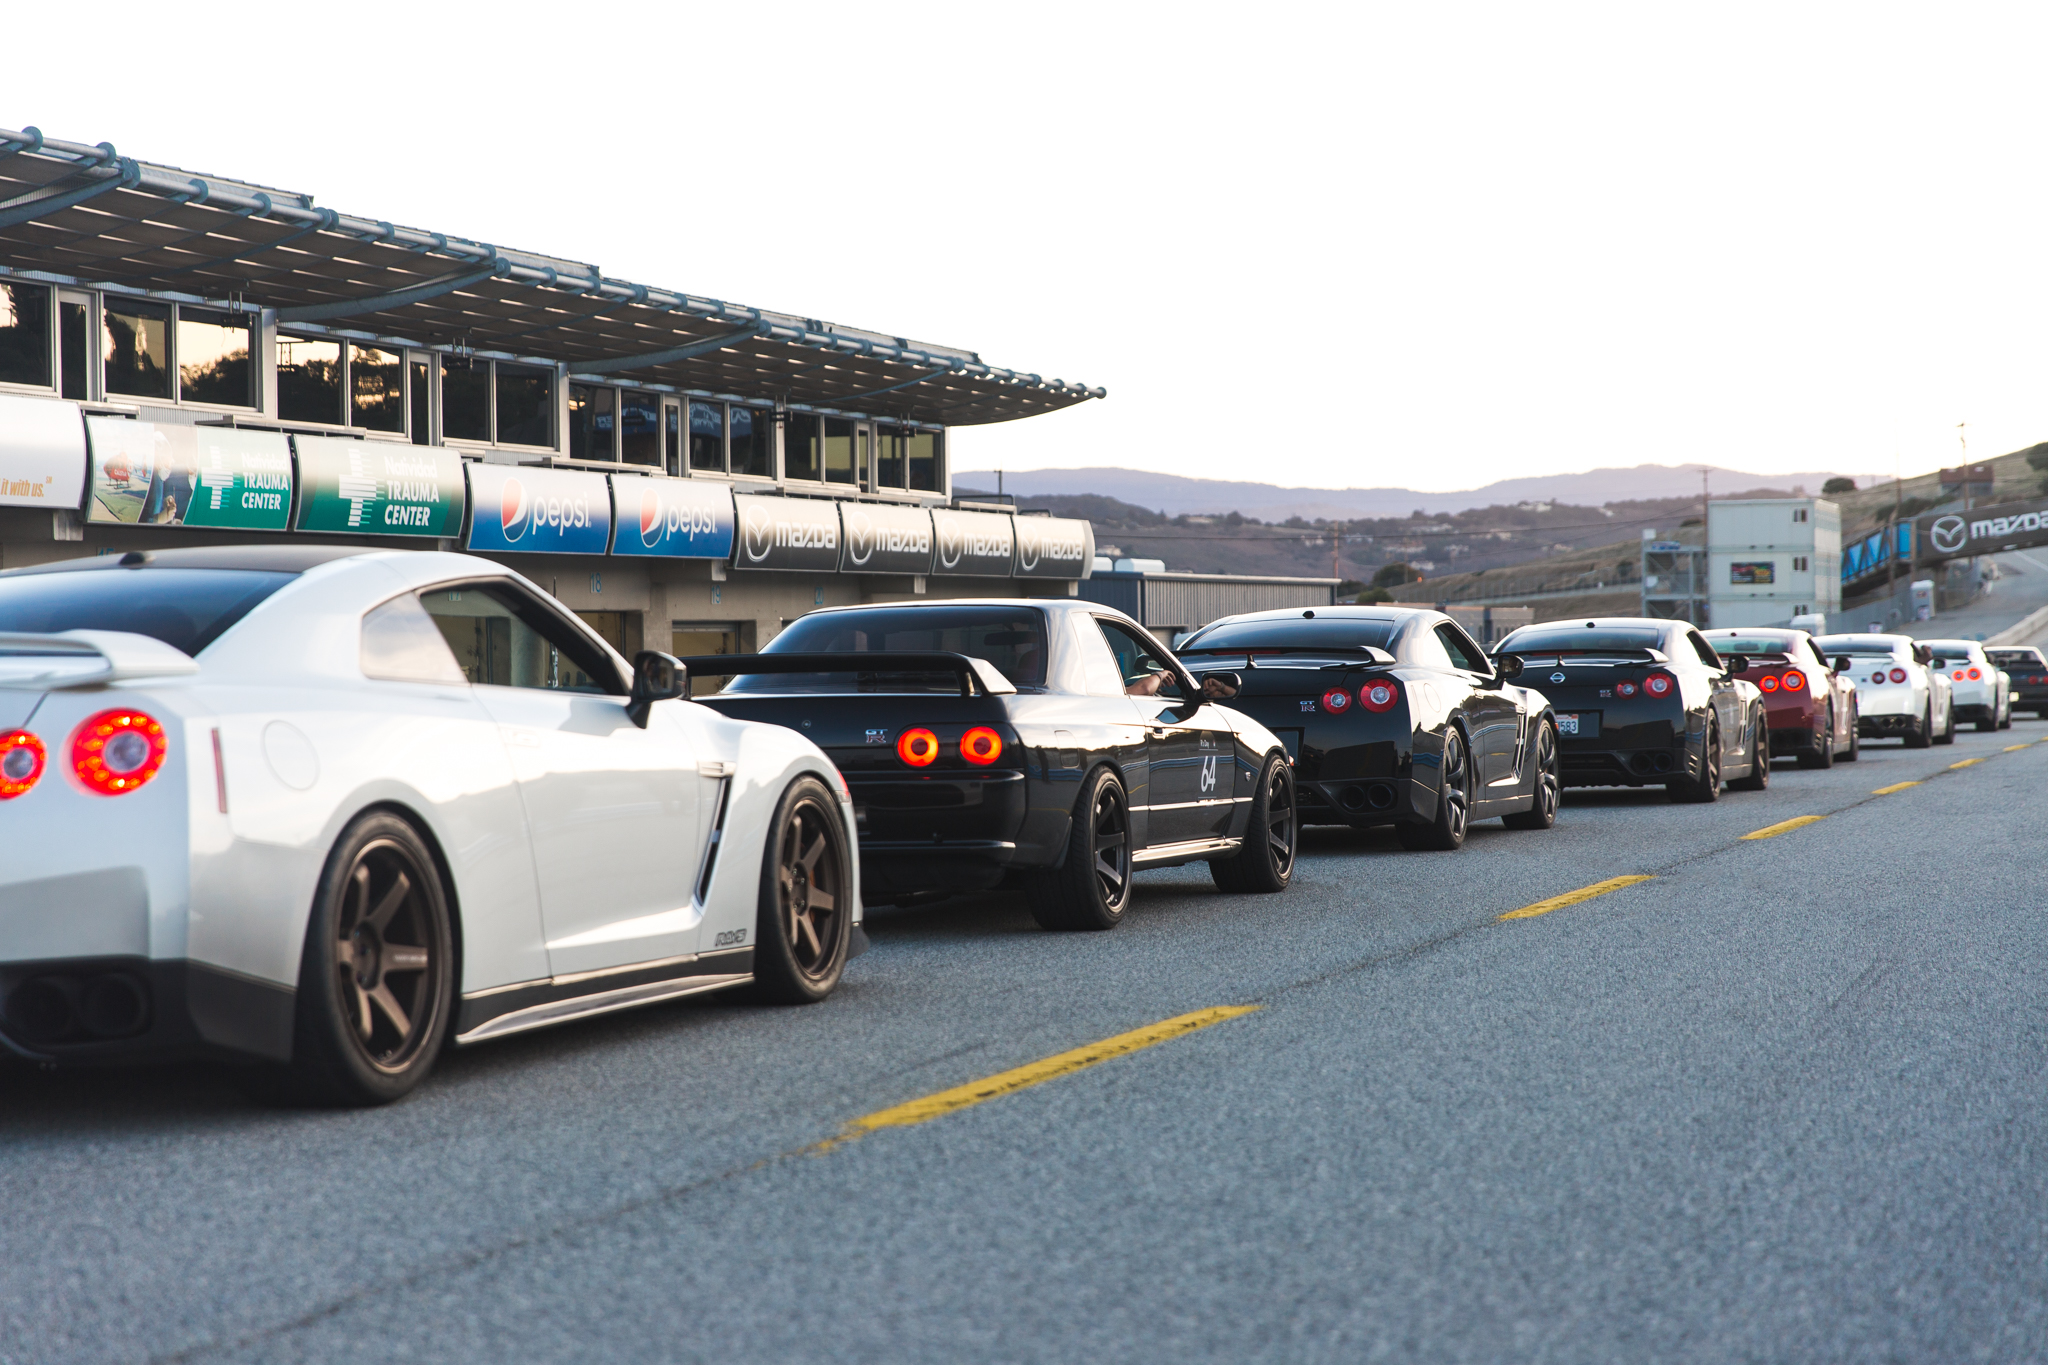 Stay_Driven_Rs_Day-140.jpg